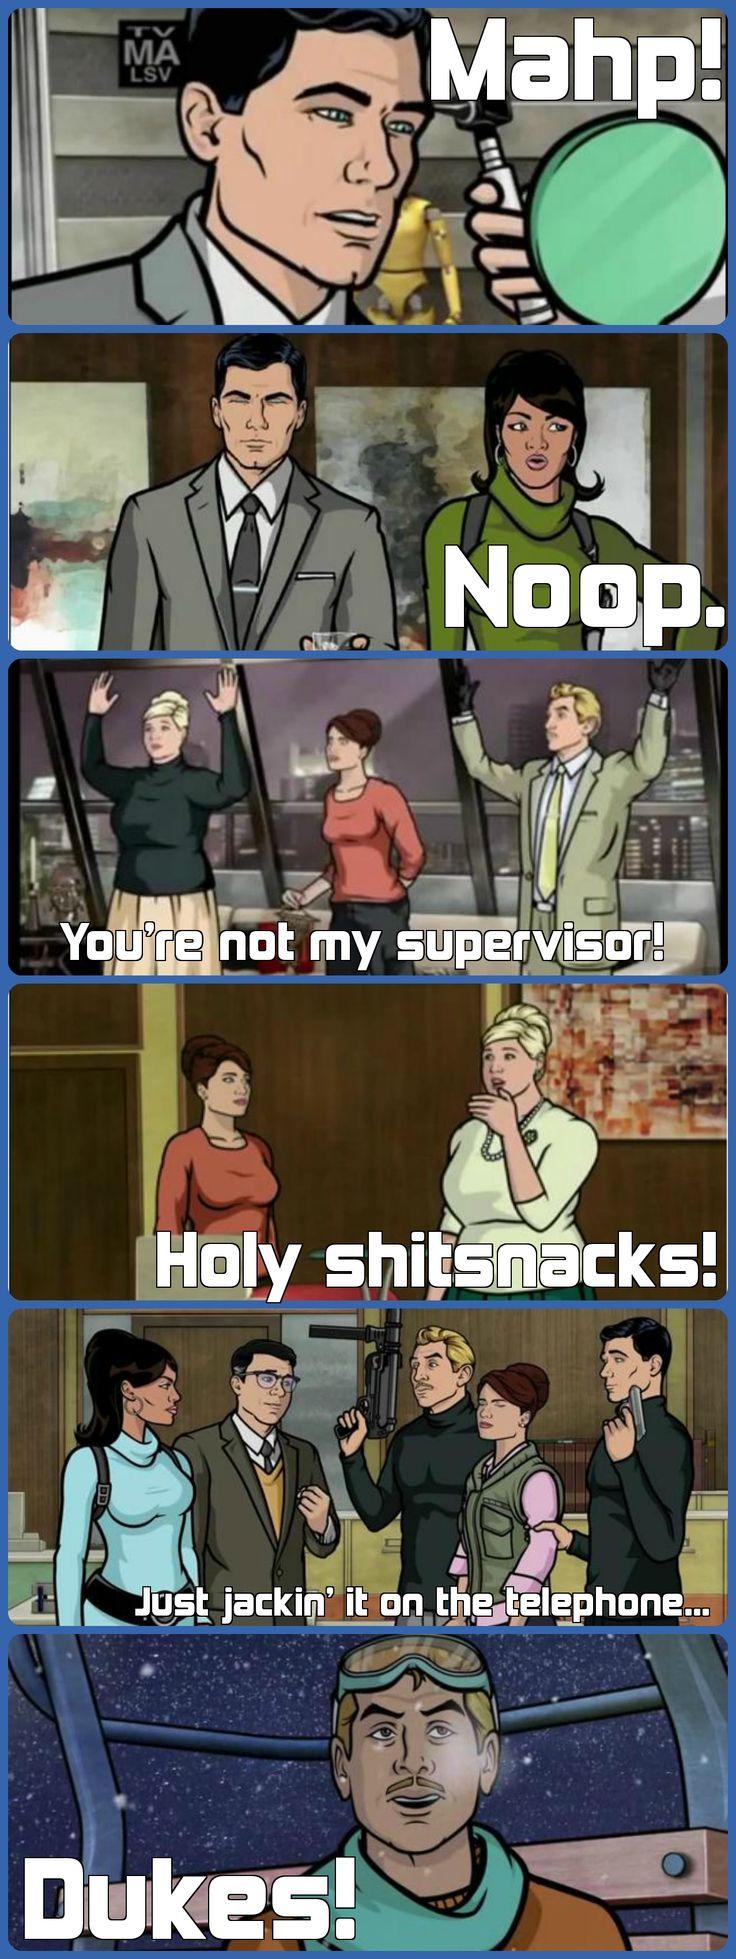 Catchphrases and/or memorable phrases from Archer.